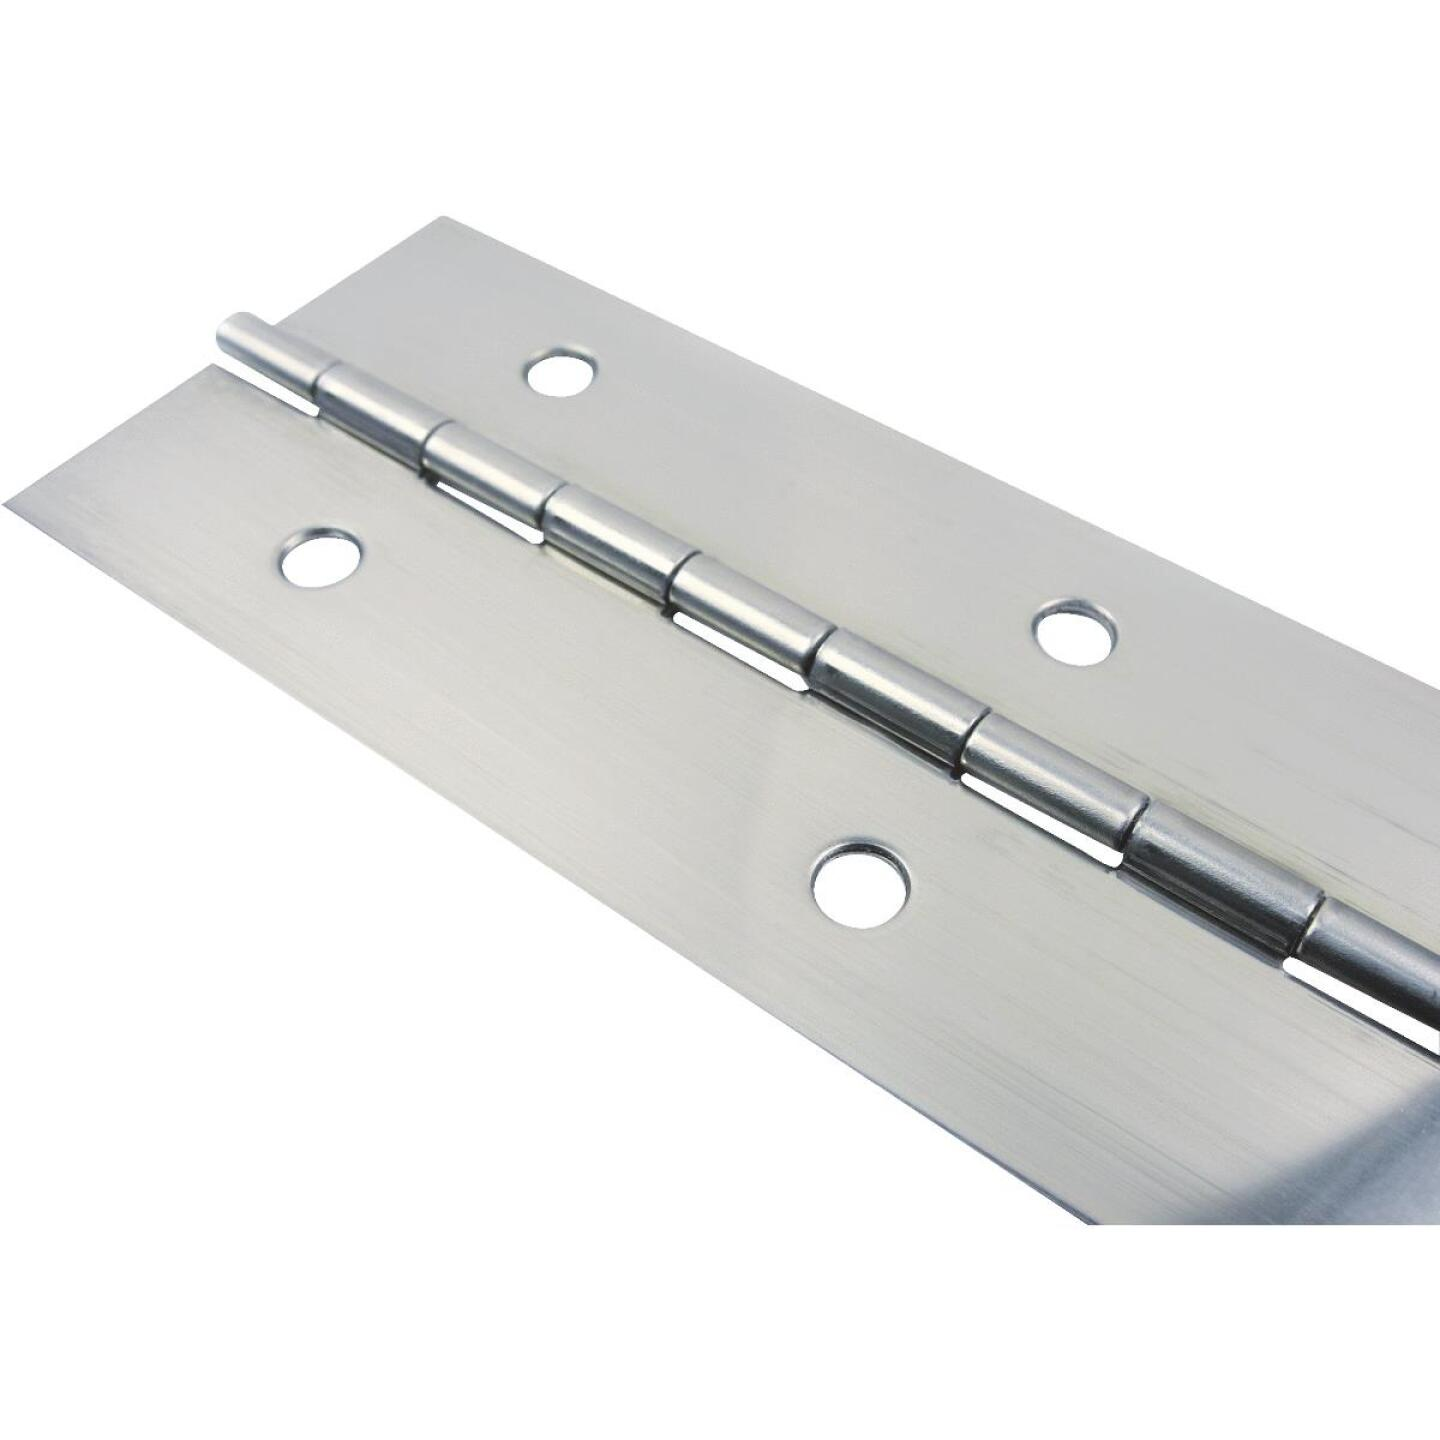 Seachoice 2 In. x 6 Ft. Stainless Steel Continuous Hinge Image 1